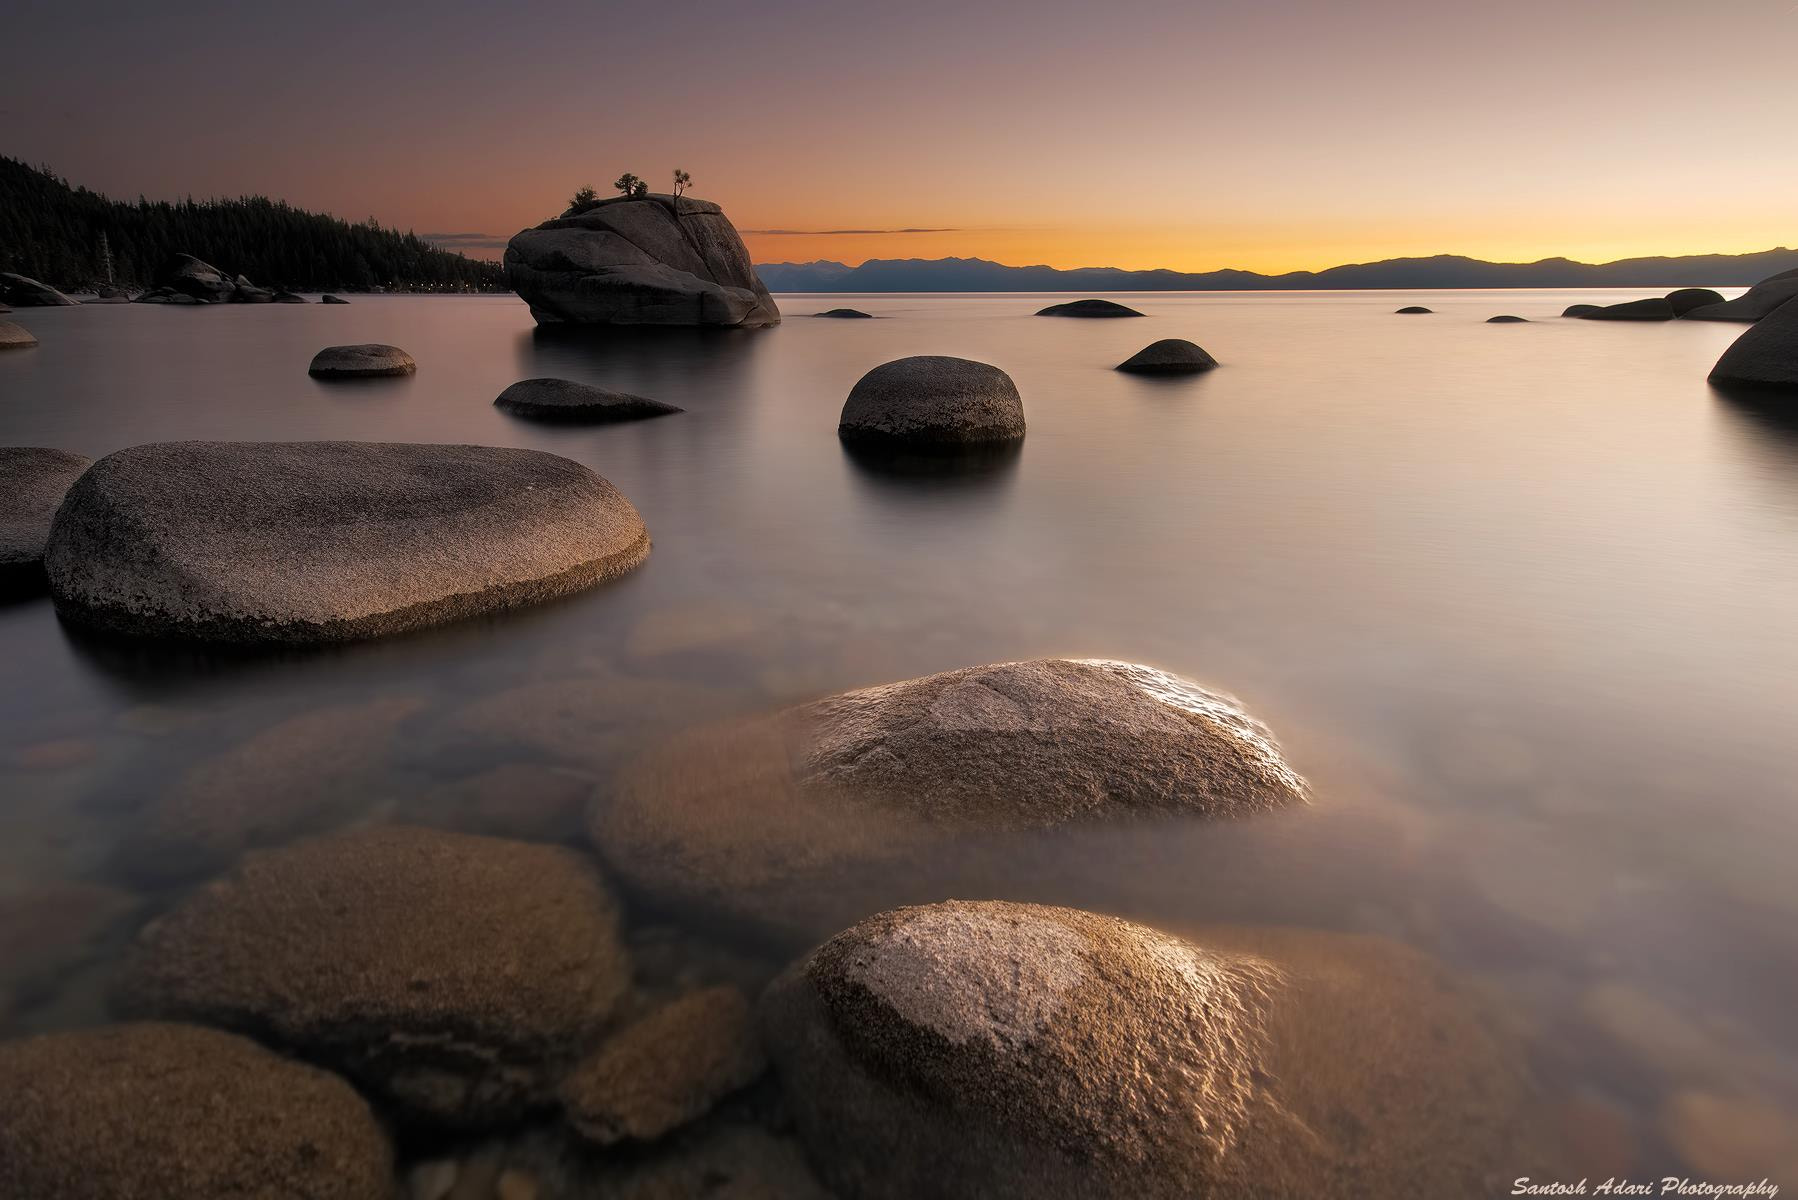 Photograph Bonsai Rock, Lake Tahoe by Santosh Adari on 500px